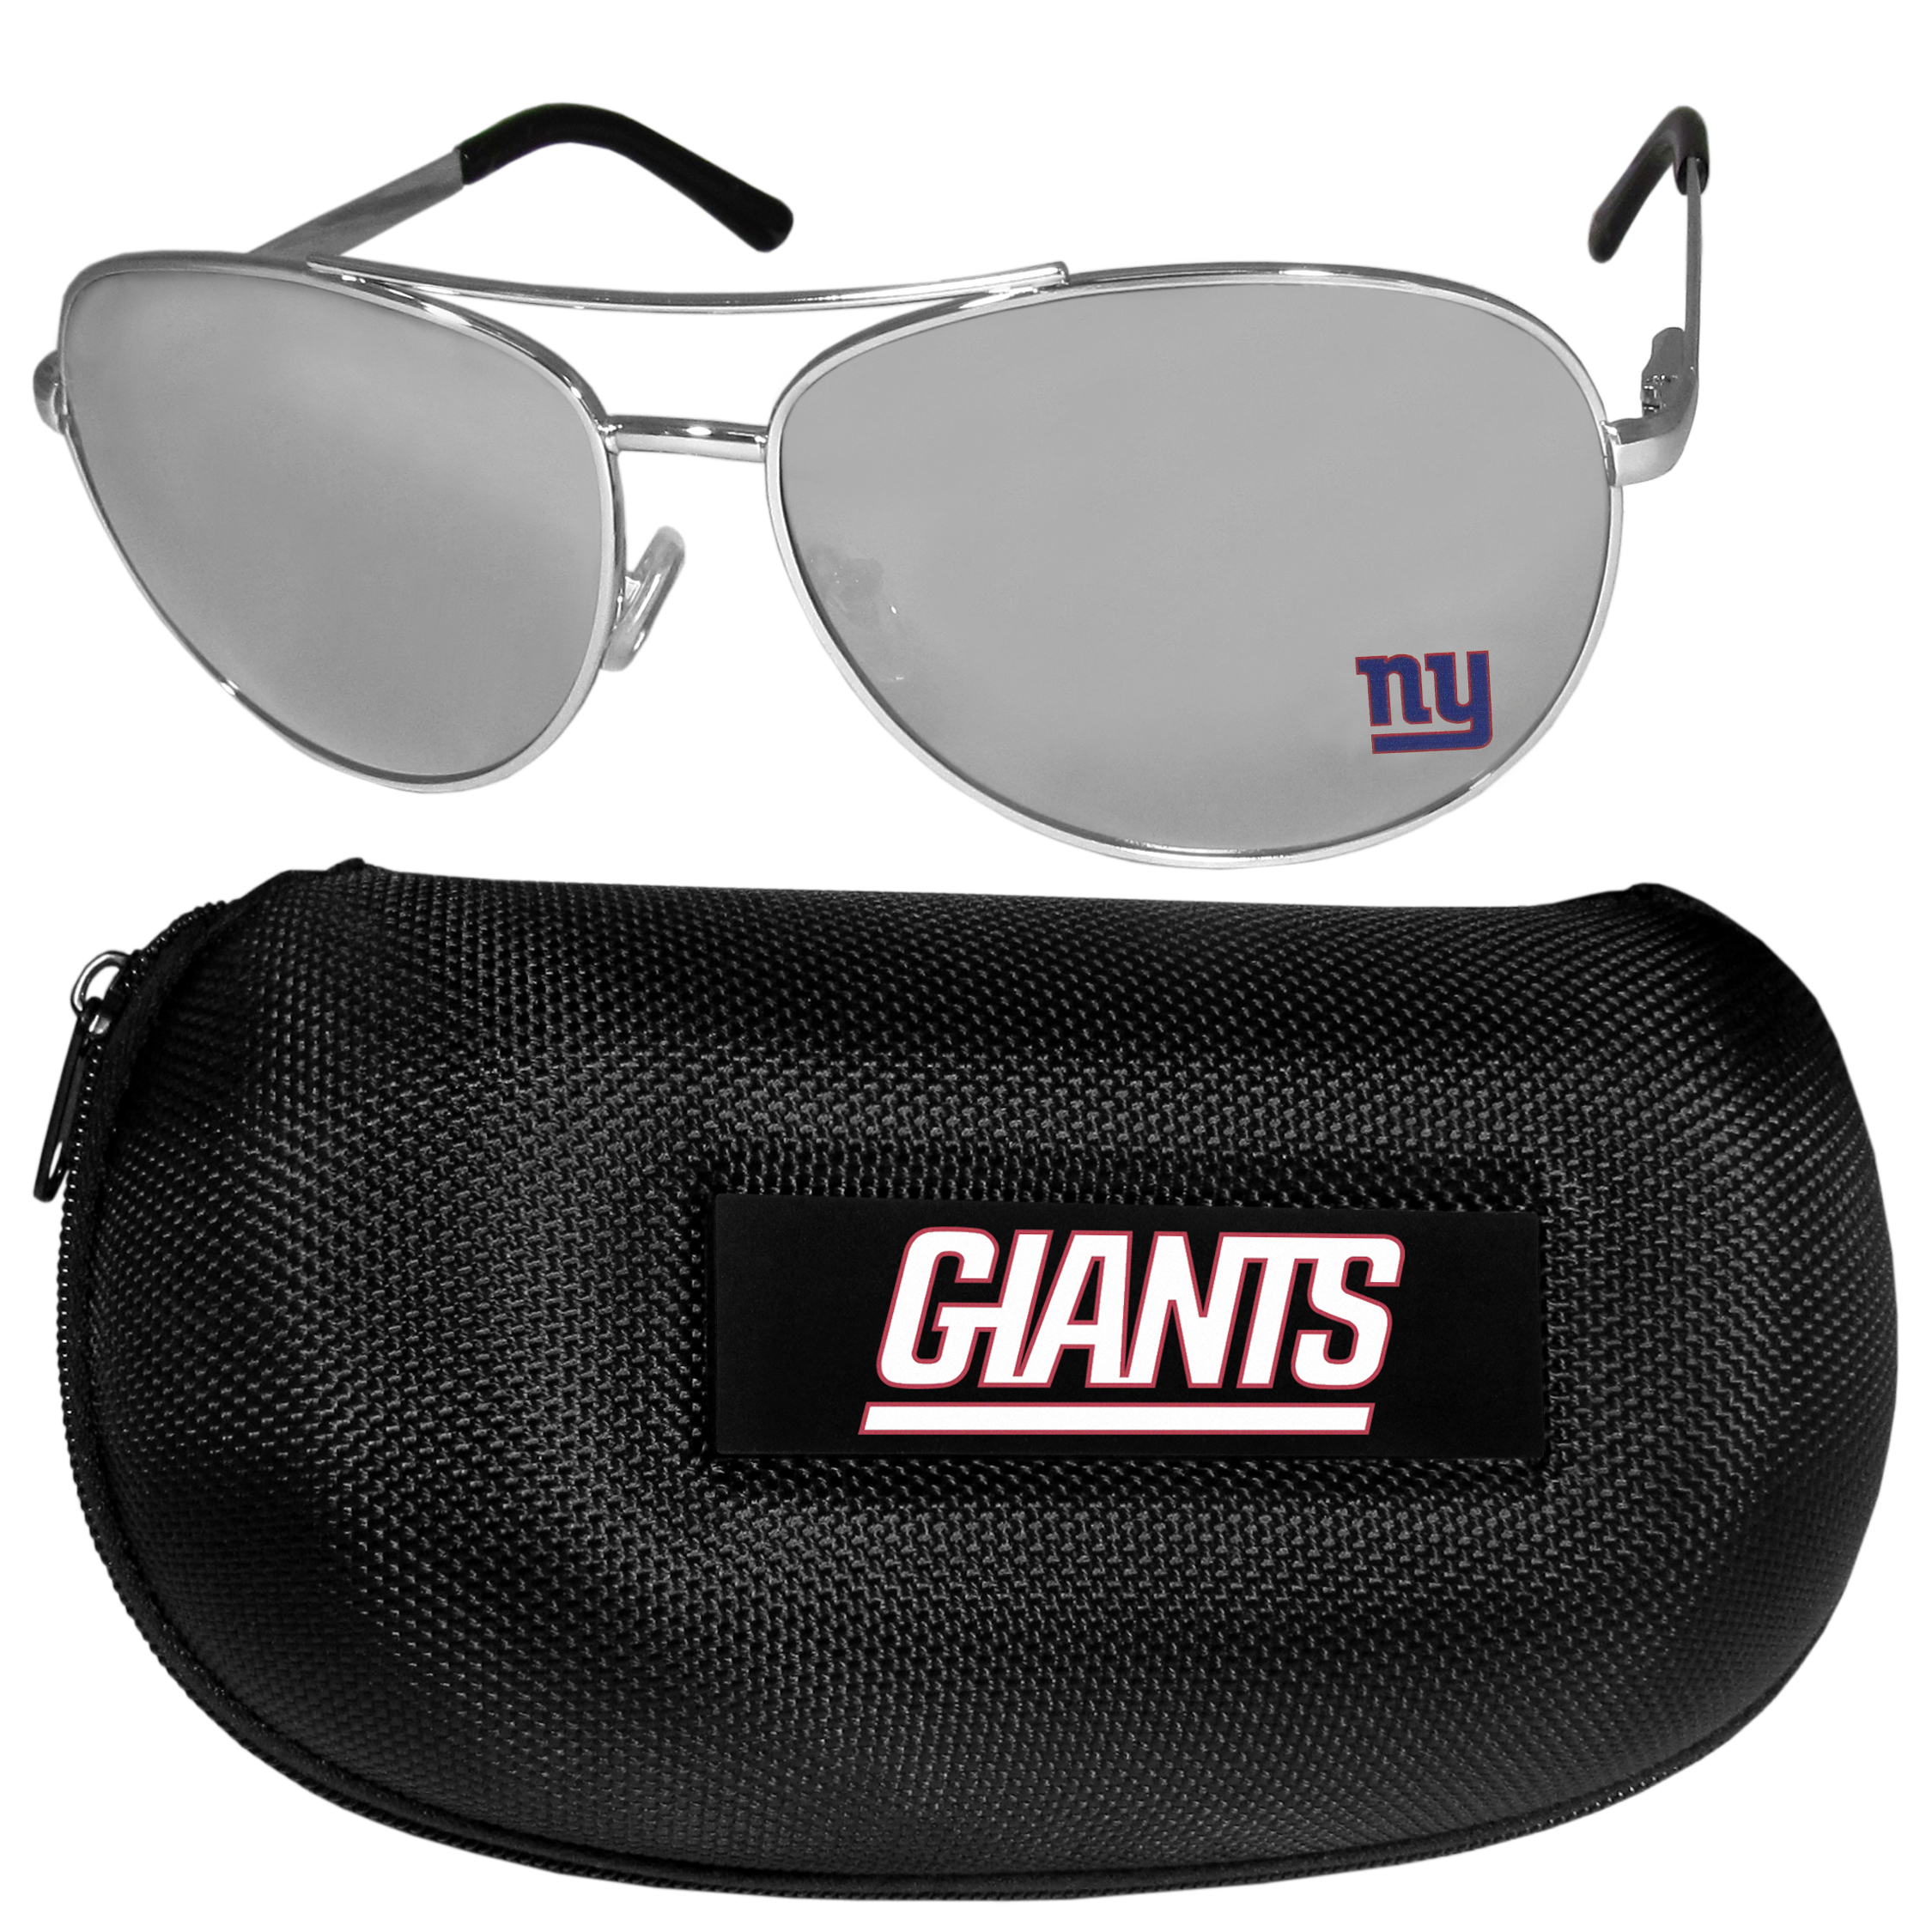 New York Giants Aviator Sunglasses and Zippered Carrying Case - Aviator sunglasses are truly an iconic retro fashion statement that never goes out-of-style. Our New York Giants  aviator sunglasses pair this classic look with your love of the game. The iridium coated lenses reduce glare while driving, boating, golfing and their 100% UVA/UVB rating provides you with the maximum UV protection for all your outdoor activities. A millennial favorite, these affordable designer frames are the perfect eyewear accessory for a sports fan that is looking for high-quality at an affordable price. The durable, flex hinged frames are tough enough for hiking and camping or if you prefer sun bathing by the pool or on the beach these shades will really stand the test of time. The sunglasses come with a hard shell zippered case which has a large team logo on the lid that will make even the most die-hard fan proud!